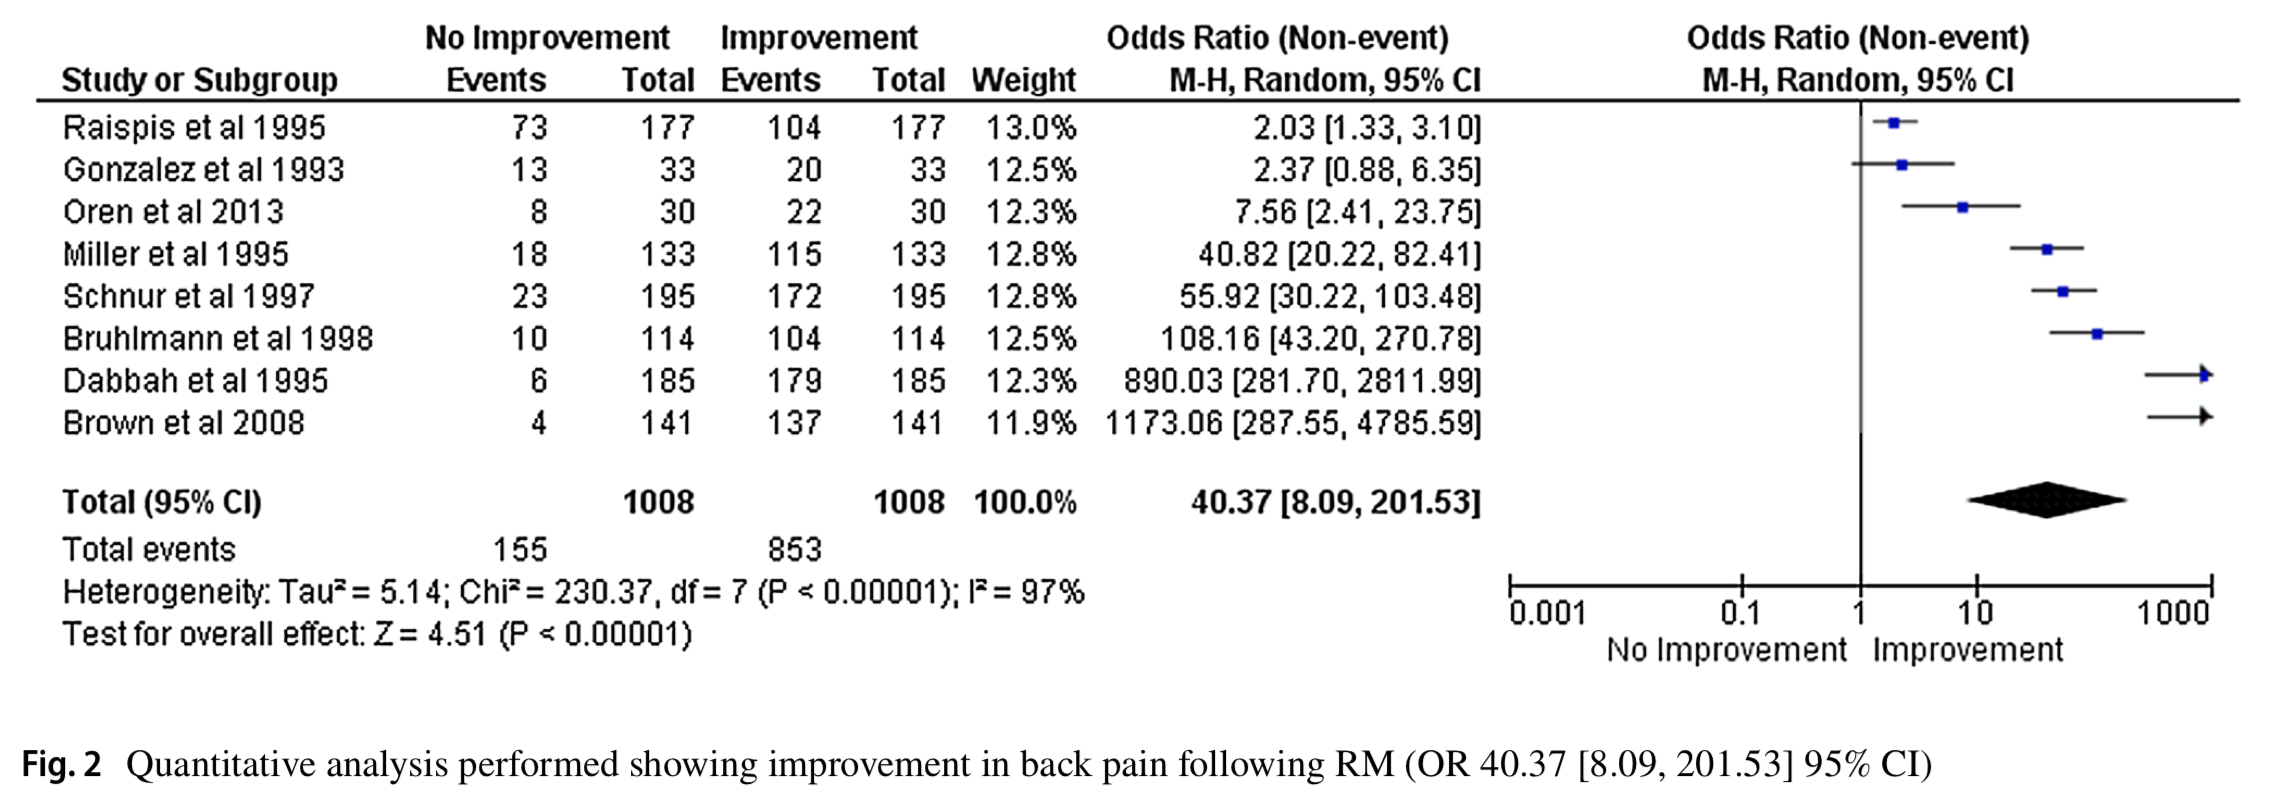 Reduction mammoplasty and back pain: a systematic review and meta-analysis